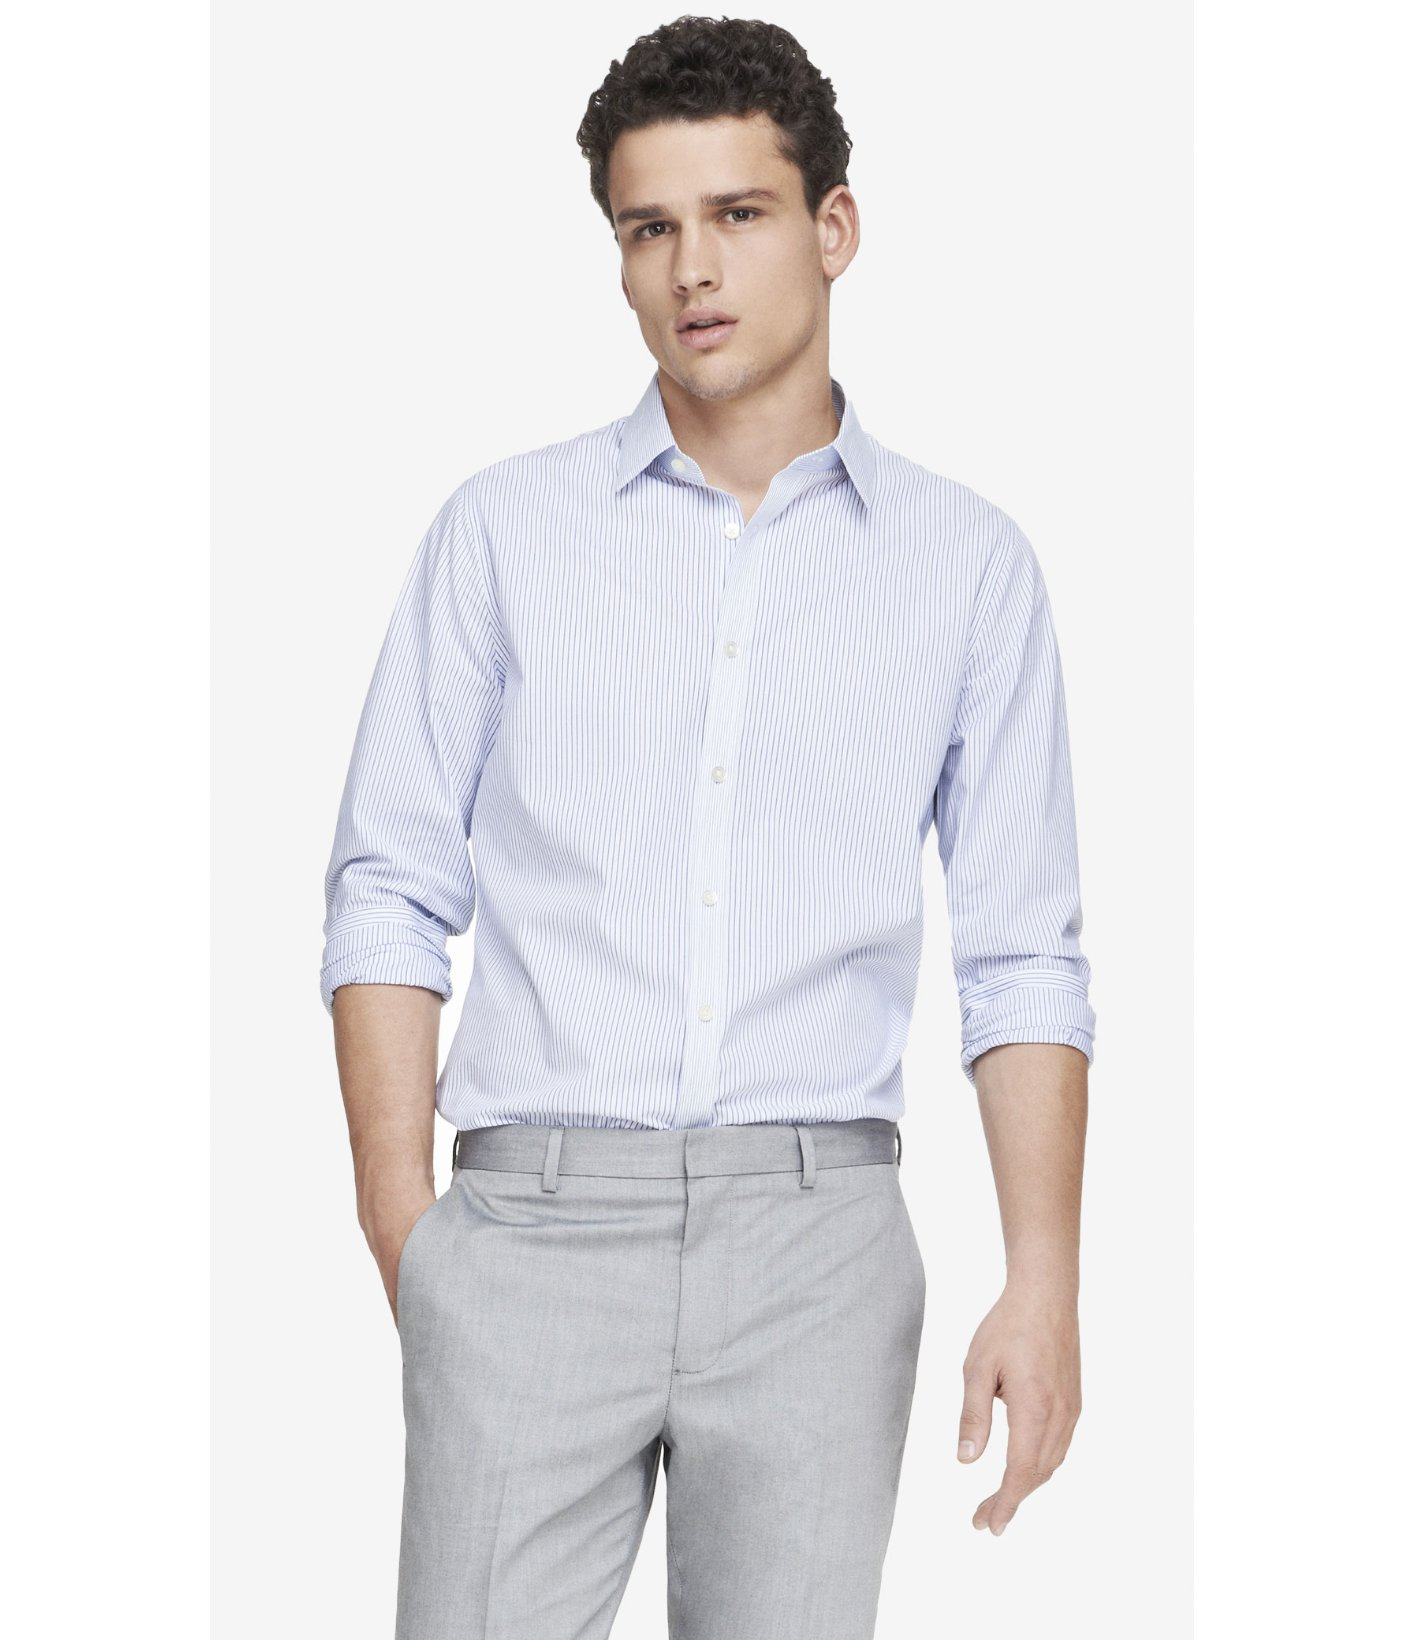 Slim Fit Dress Shirts for Men at Macy's come in a variety of styles and sizes. Shop top brands for Men's Dress Shirts and find the perfect fit today.